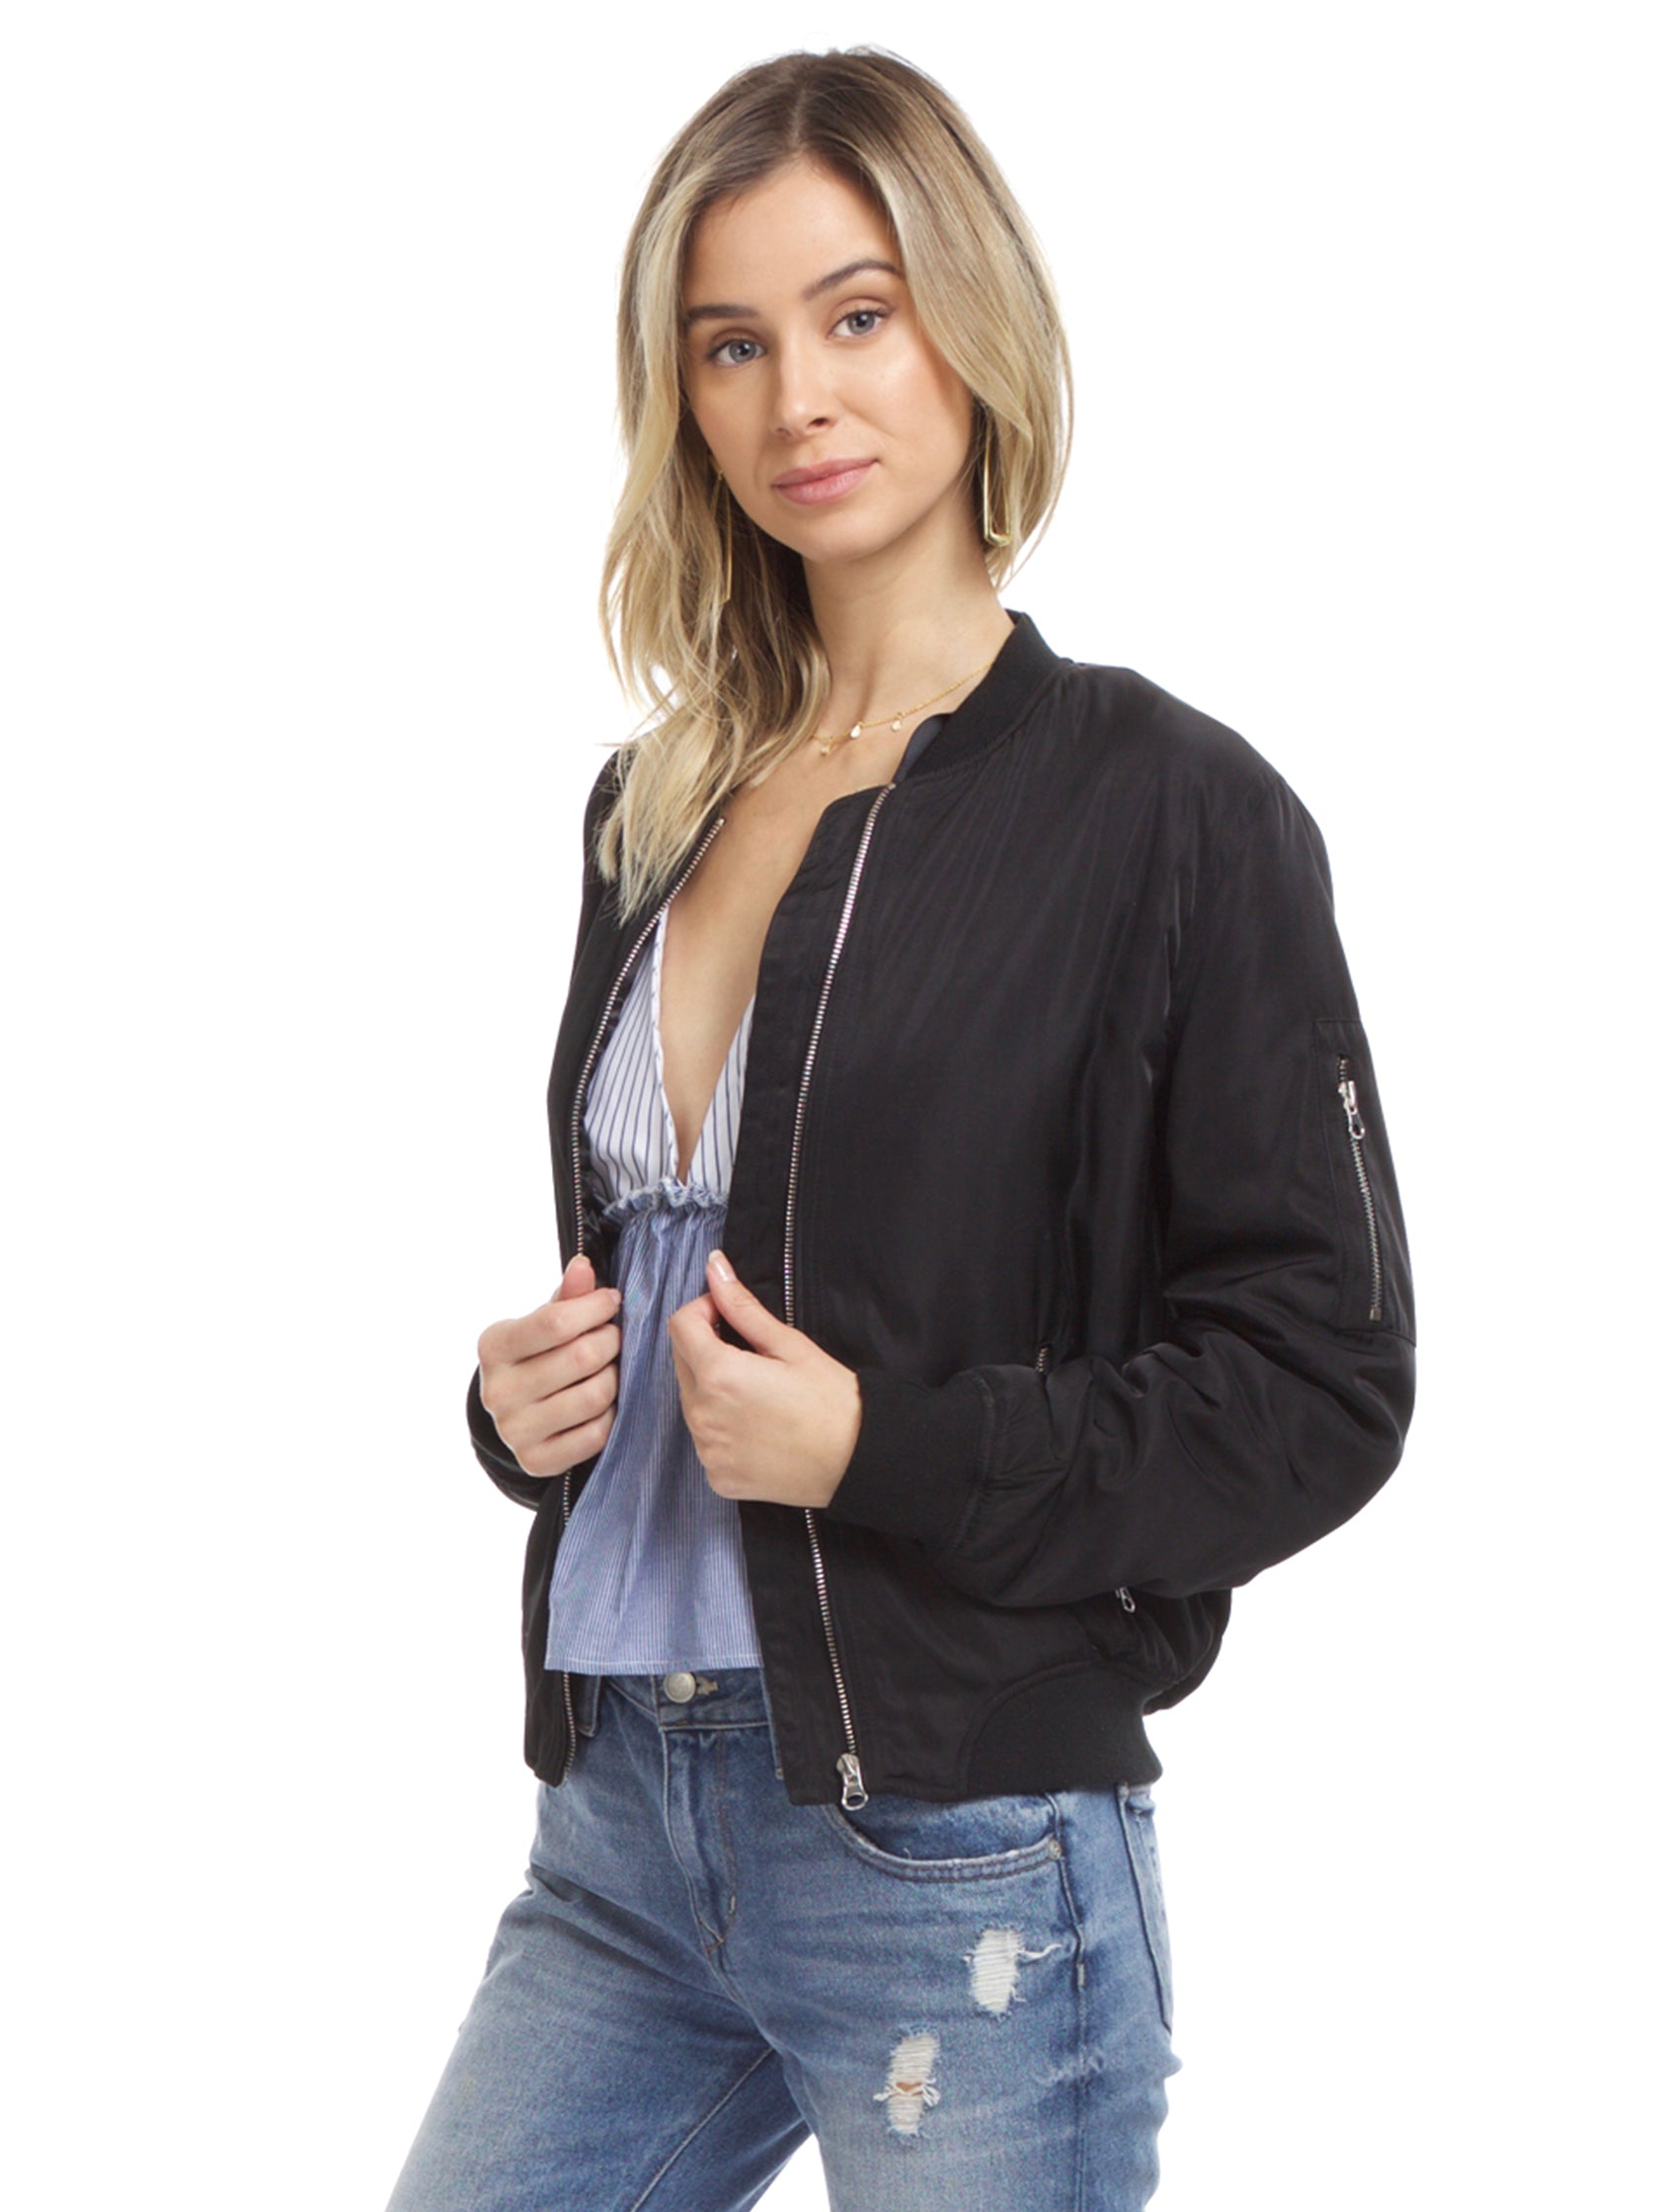 Women wearing a jacket rental from Lush called Zip Up Bomber Jacket